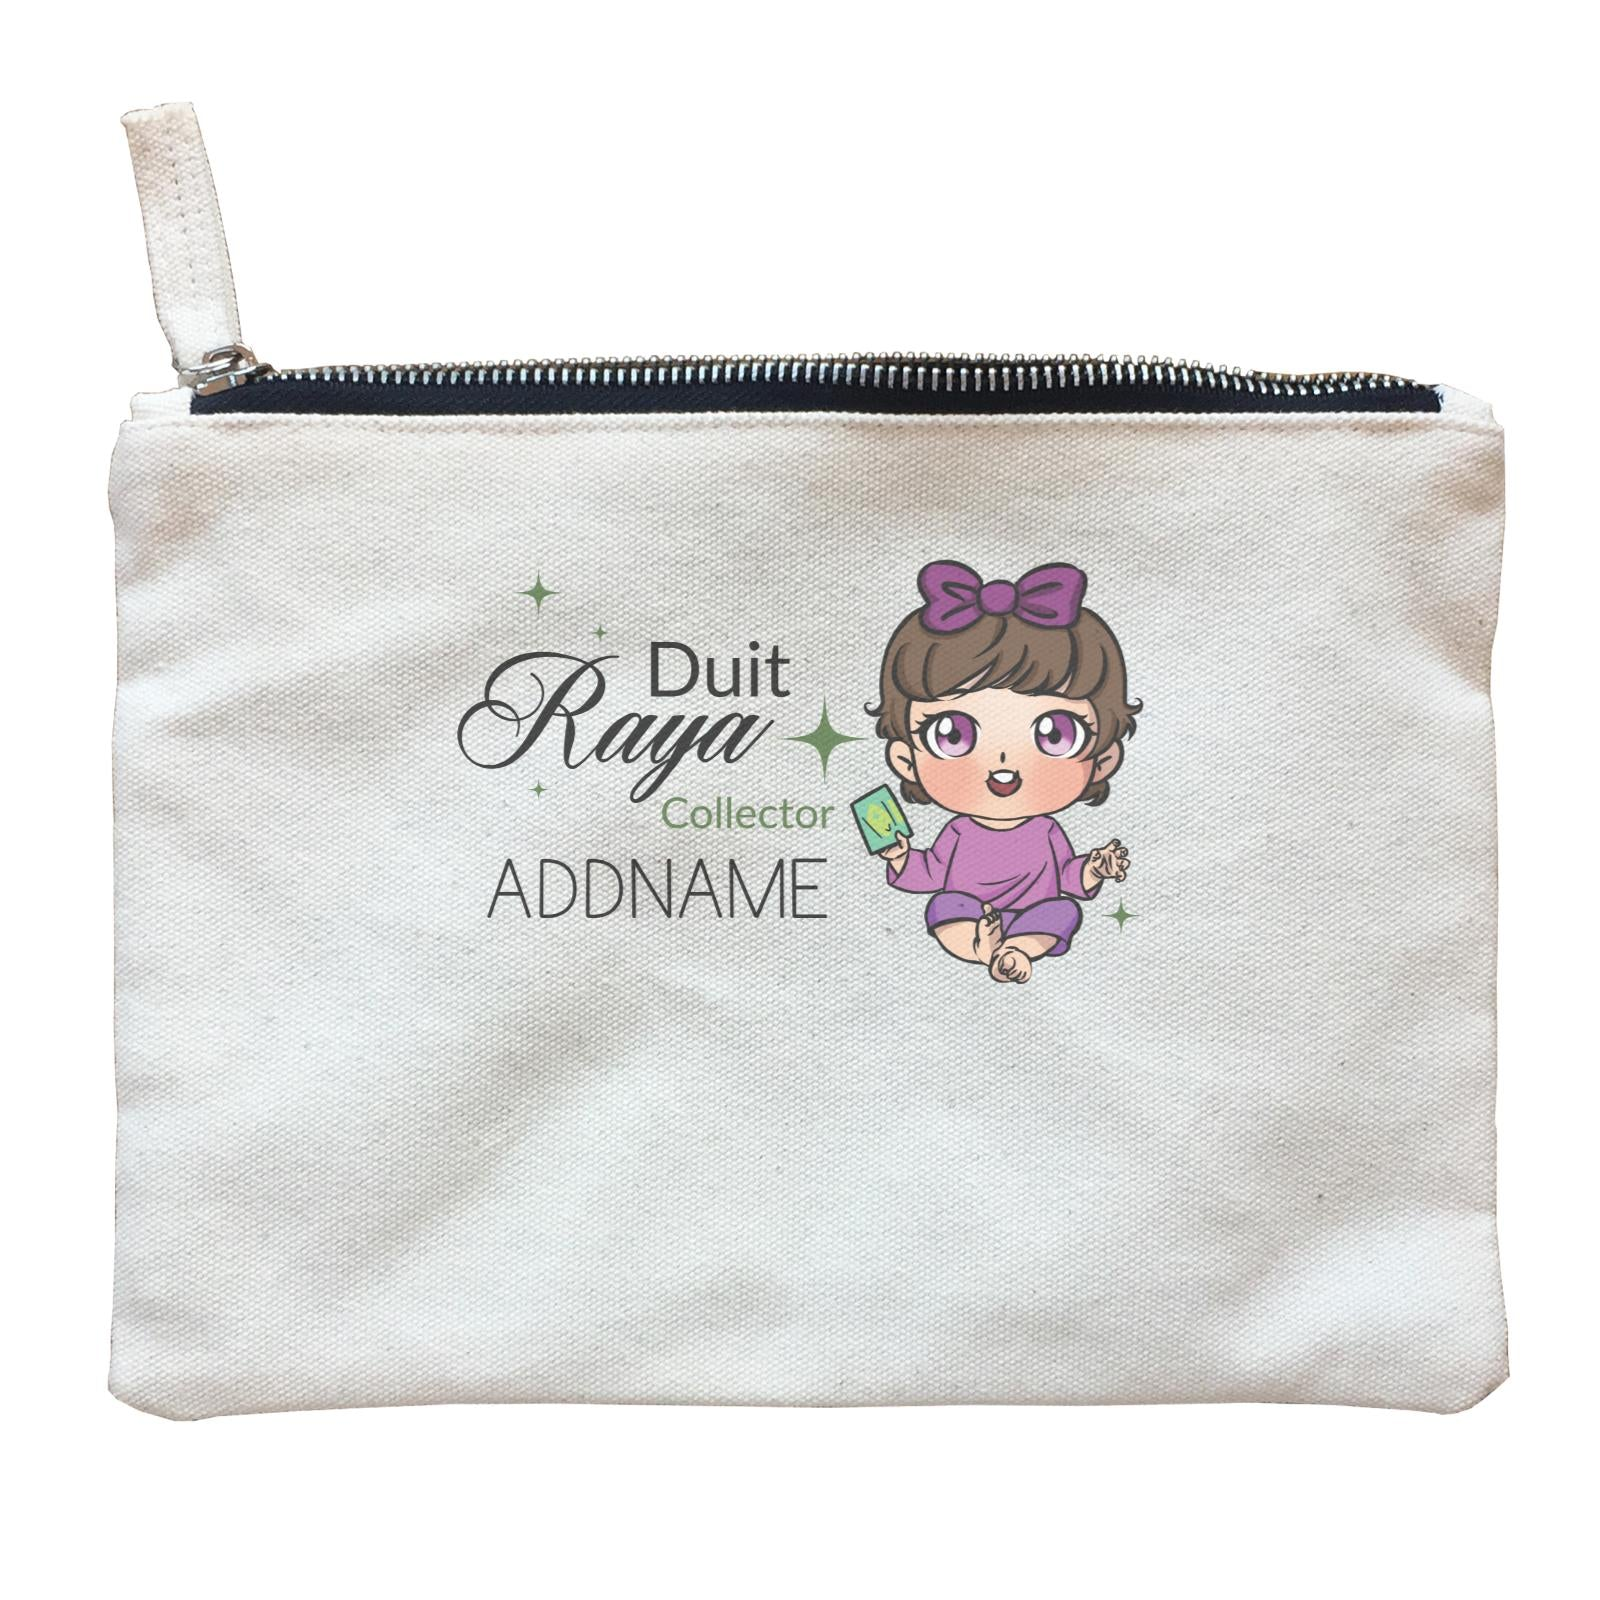 Raya Chibi Baby Baby Girl Duit Raya Collector Addname Zipper Pouch